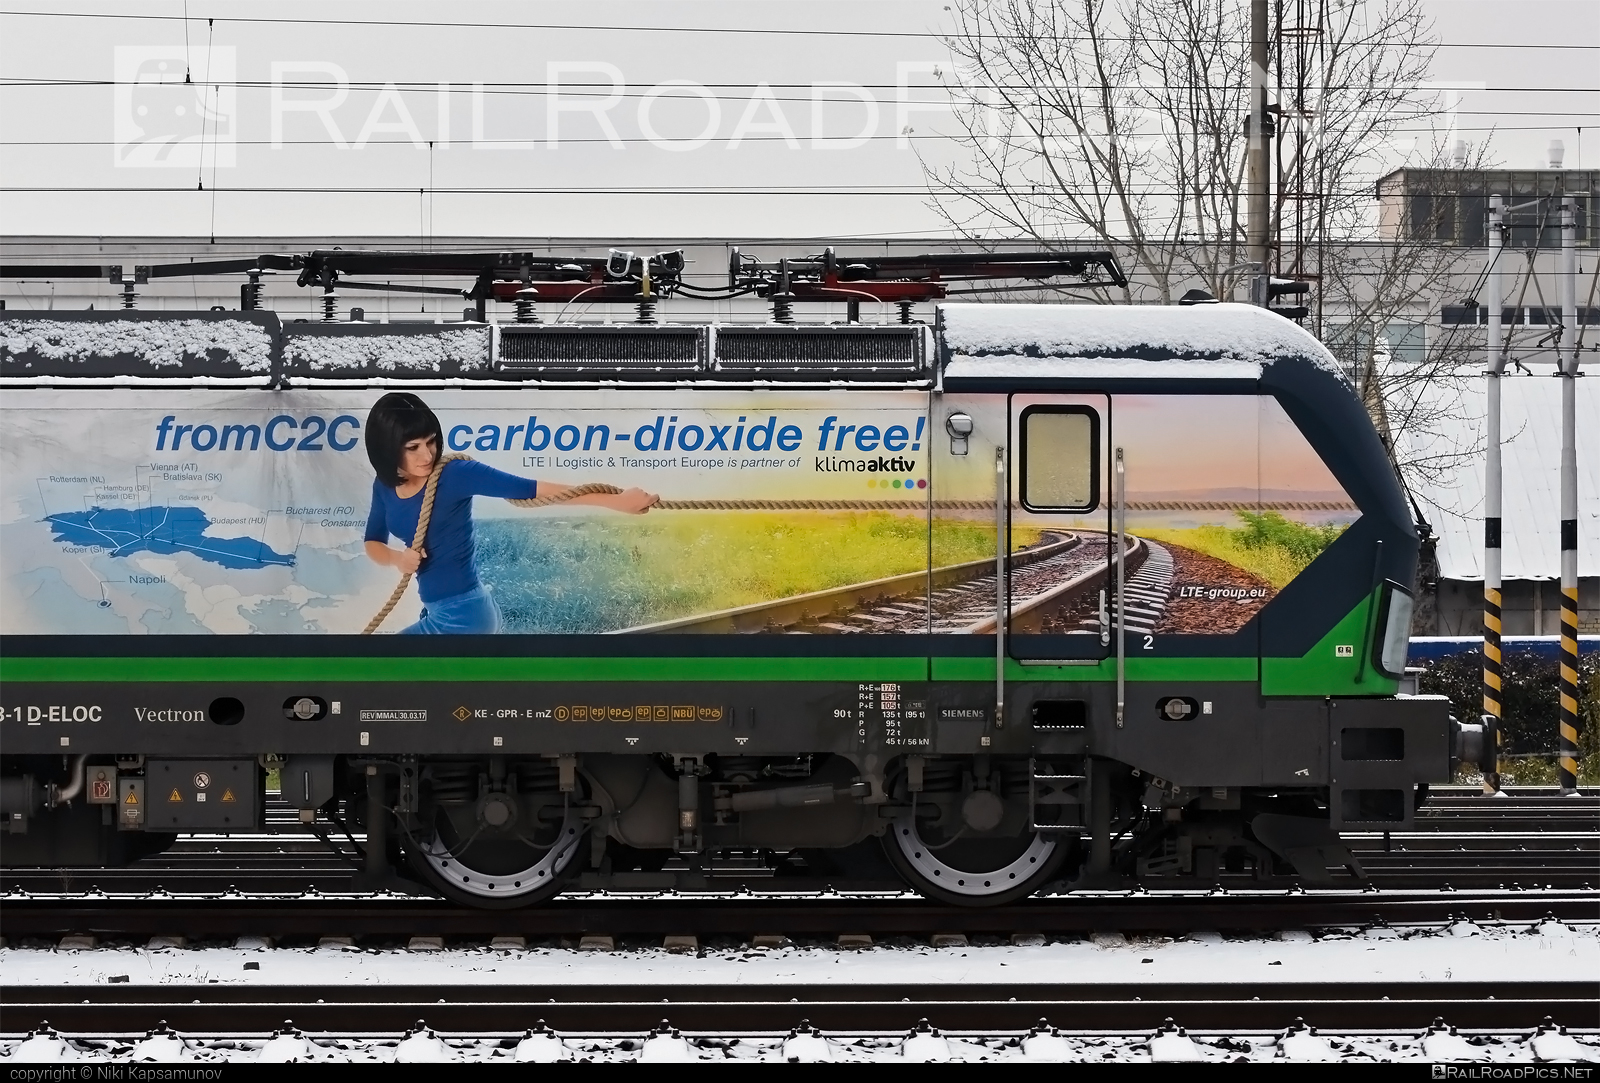 Siemens Vectron MS - 193 263 operated by LTE Logistik und Transport GmbH #ell #ellgermany #eloc #europeanlocomotiveleasing #lte #ltelogistikundtransport #ltelogistikundtransportgmbh #siemens #siemensvectron #siemensvectronms #vectron #vectronms